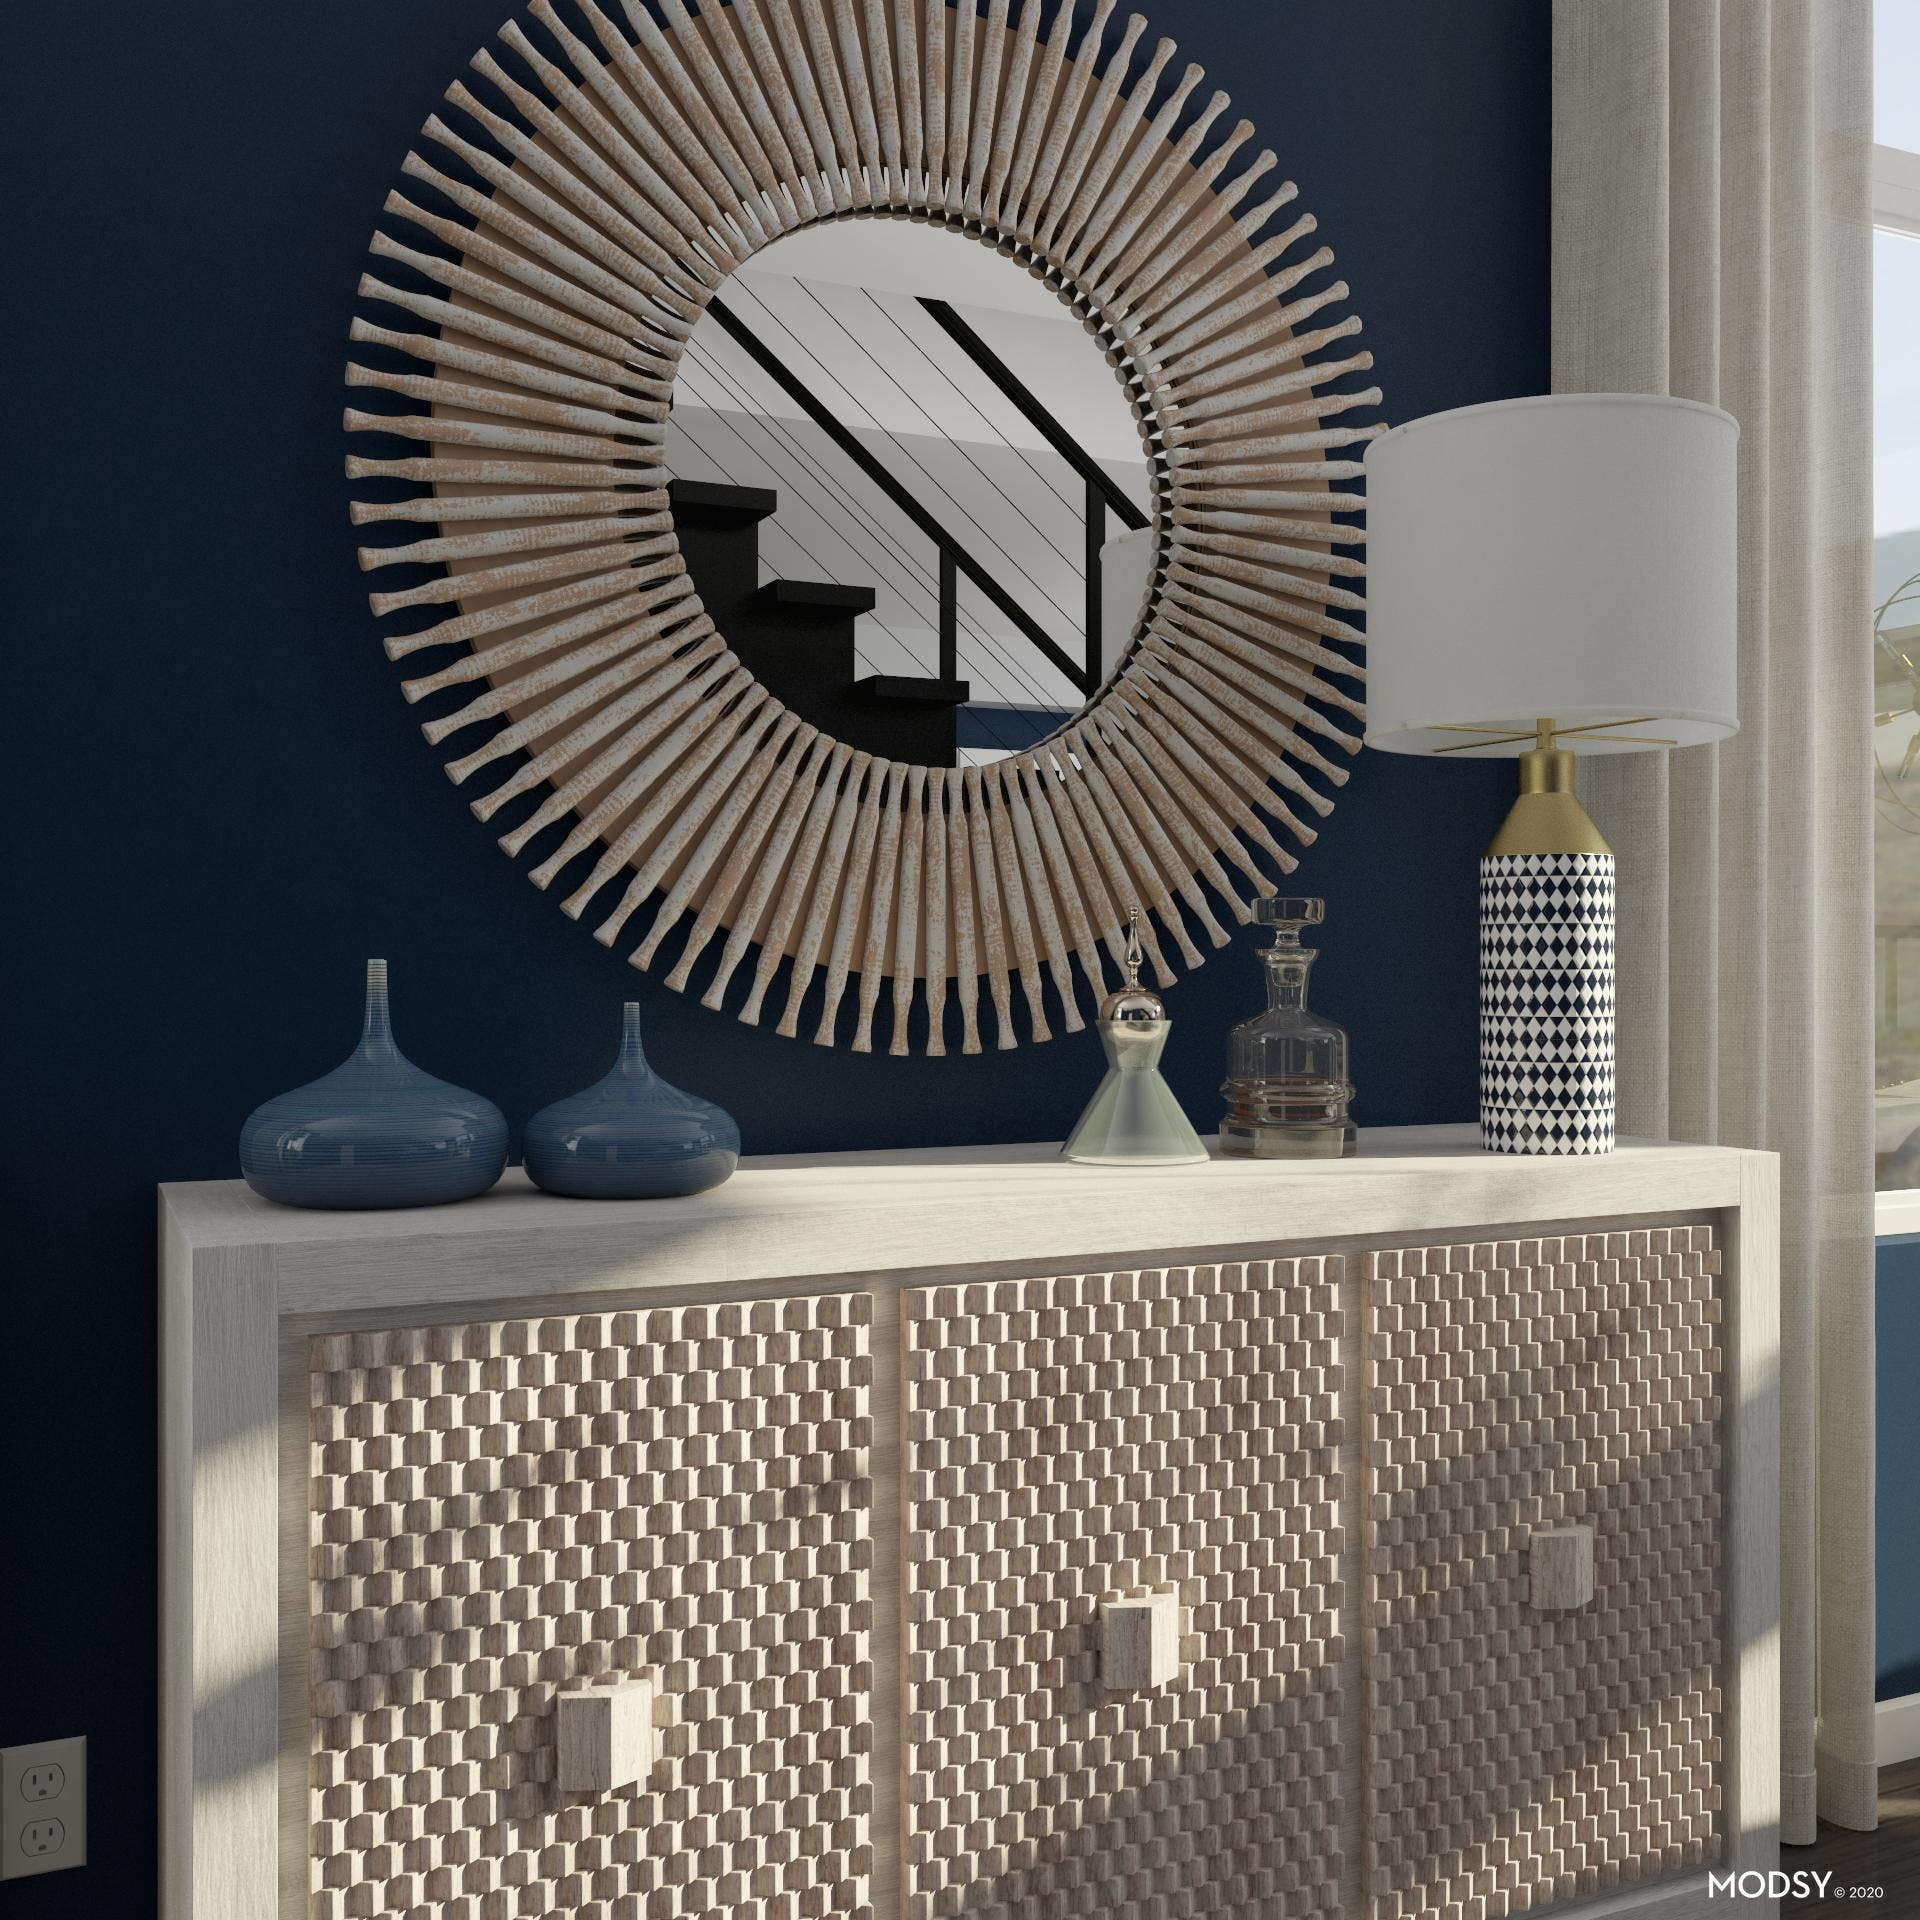 Sideboard Styling in Contemporary Dining Room